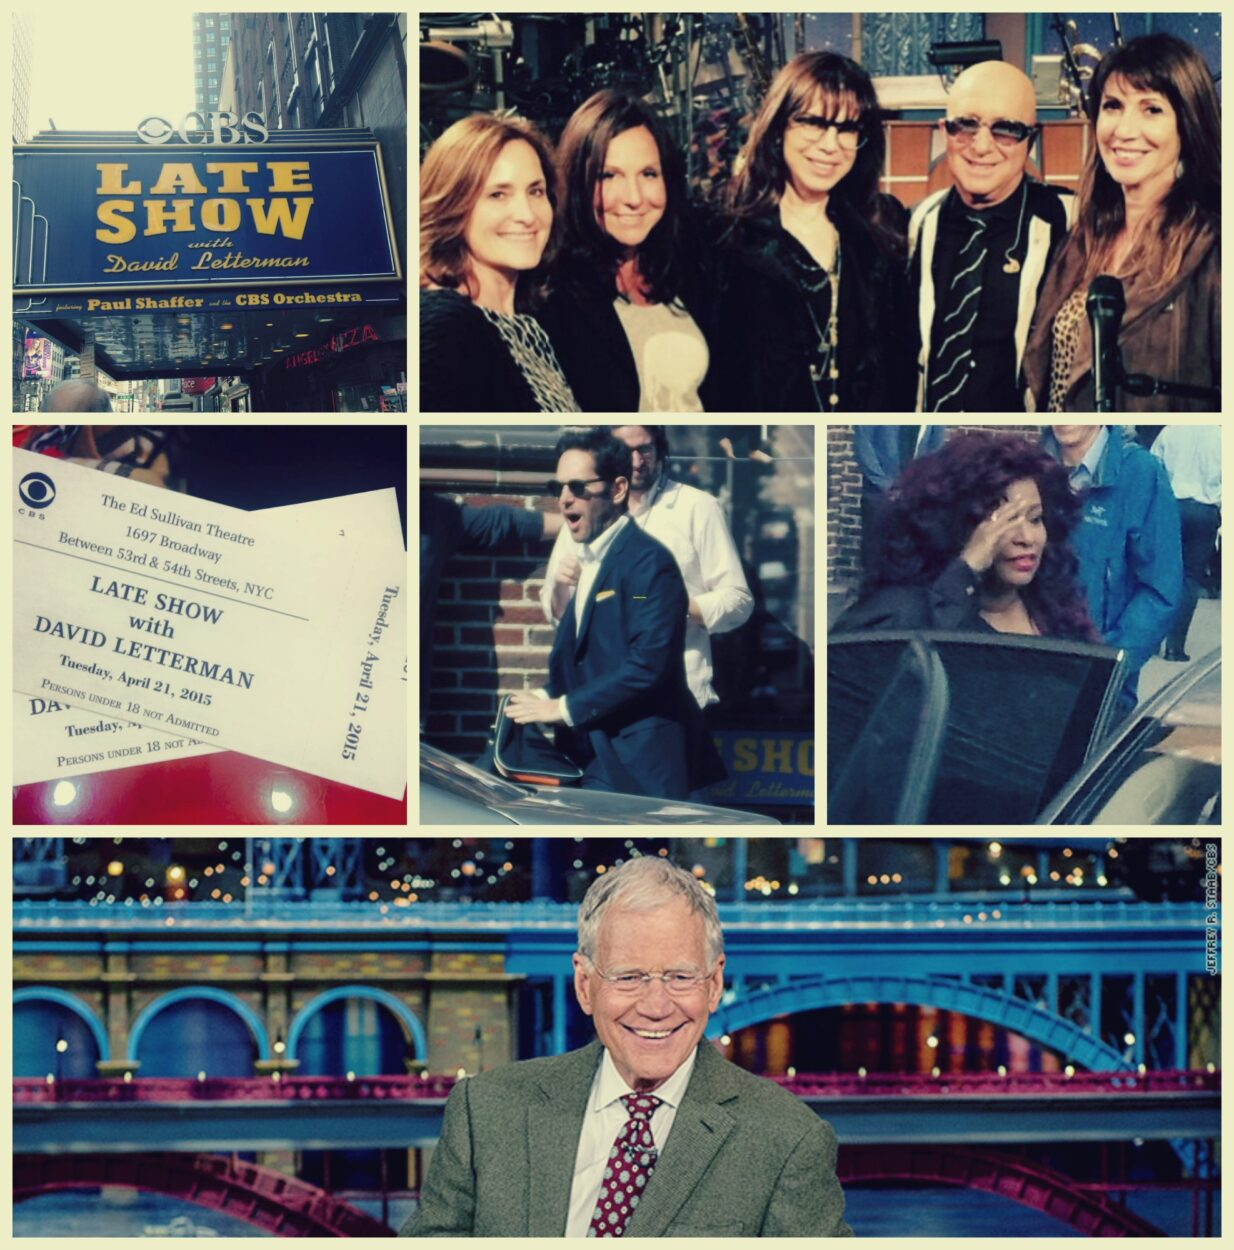 It's Always a Top 10 Day at the Late Show with David Letterman and Paul Shaffer